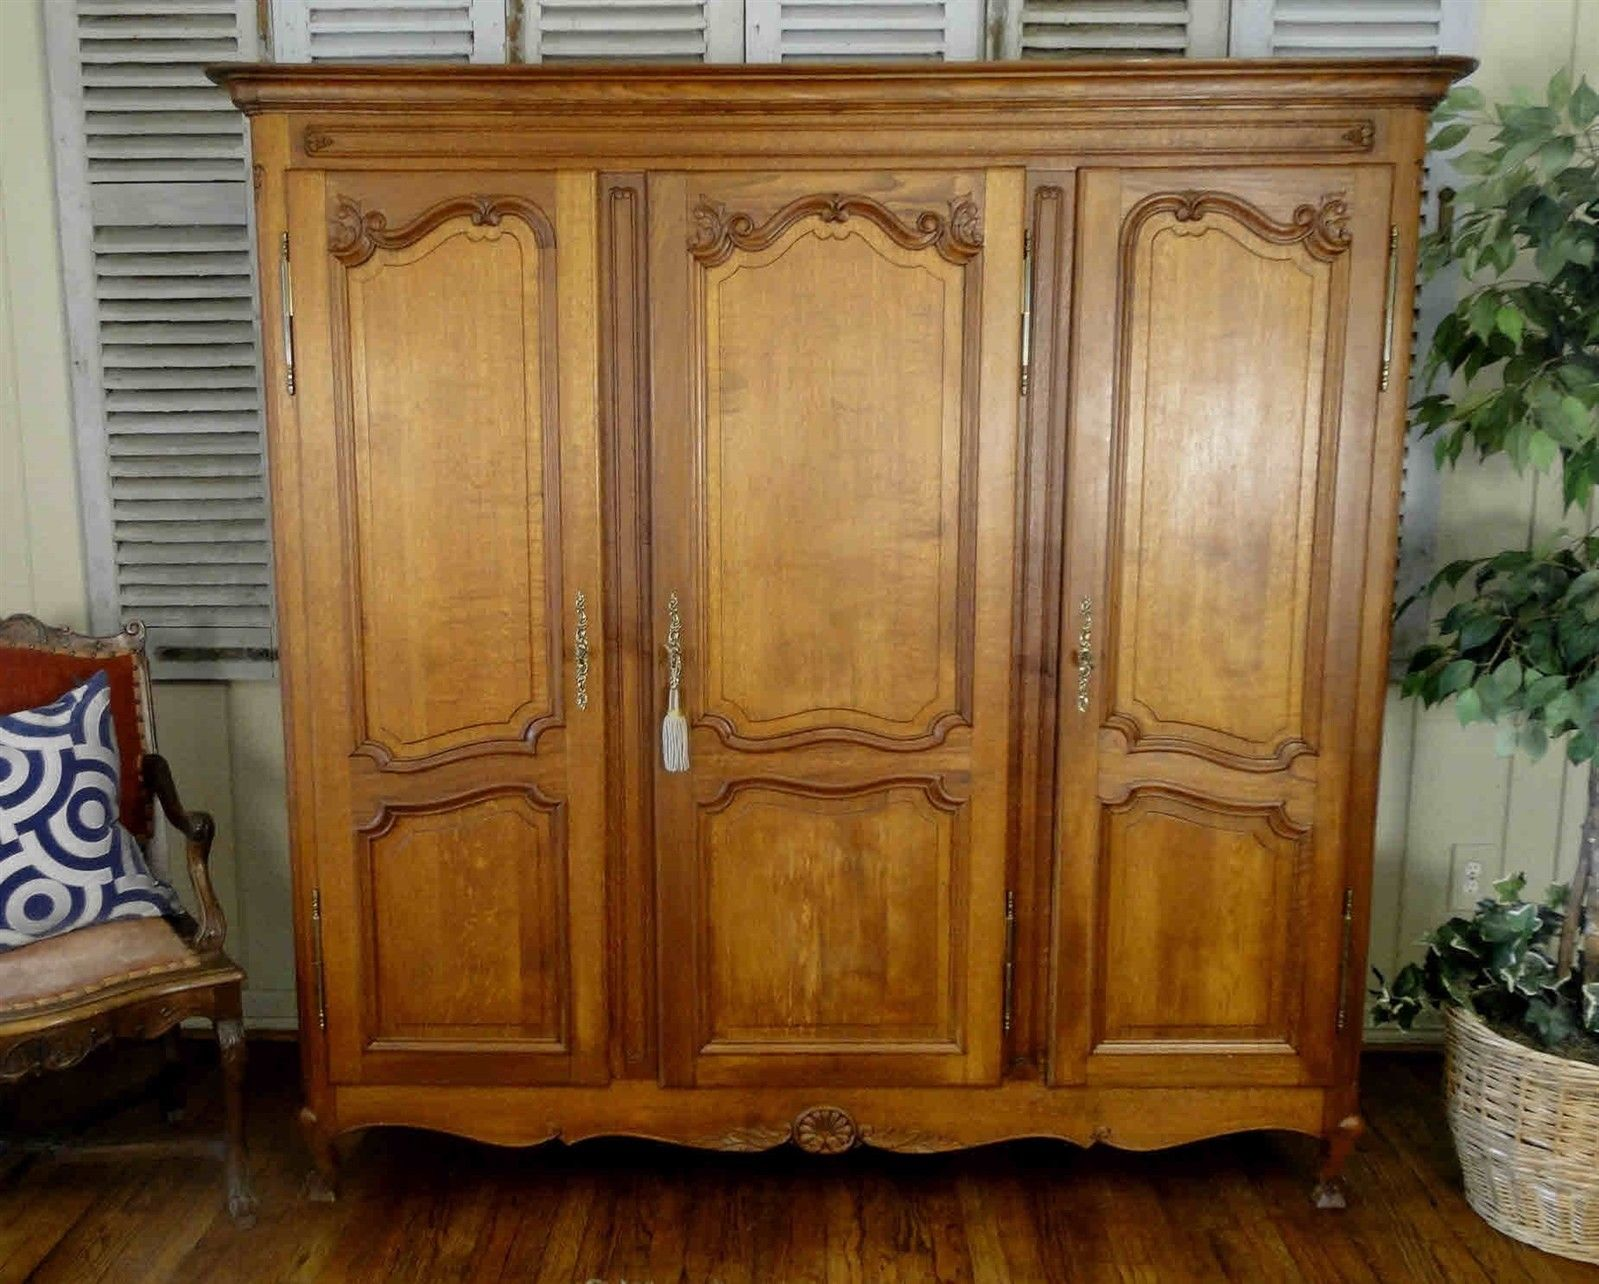 Antique French Country Wardrobe Armoire 3 door shelves hanging rod tiger Oak key